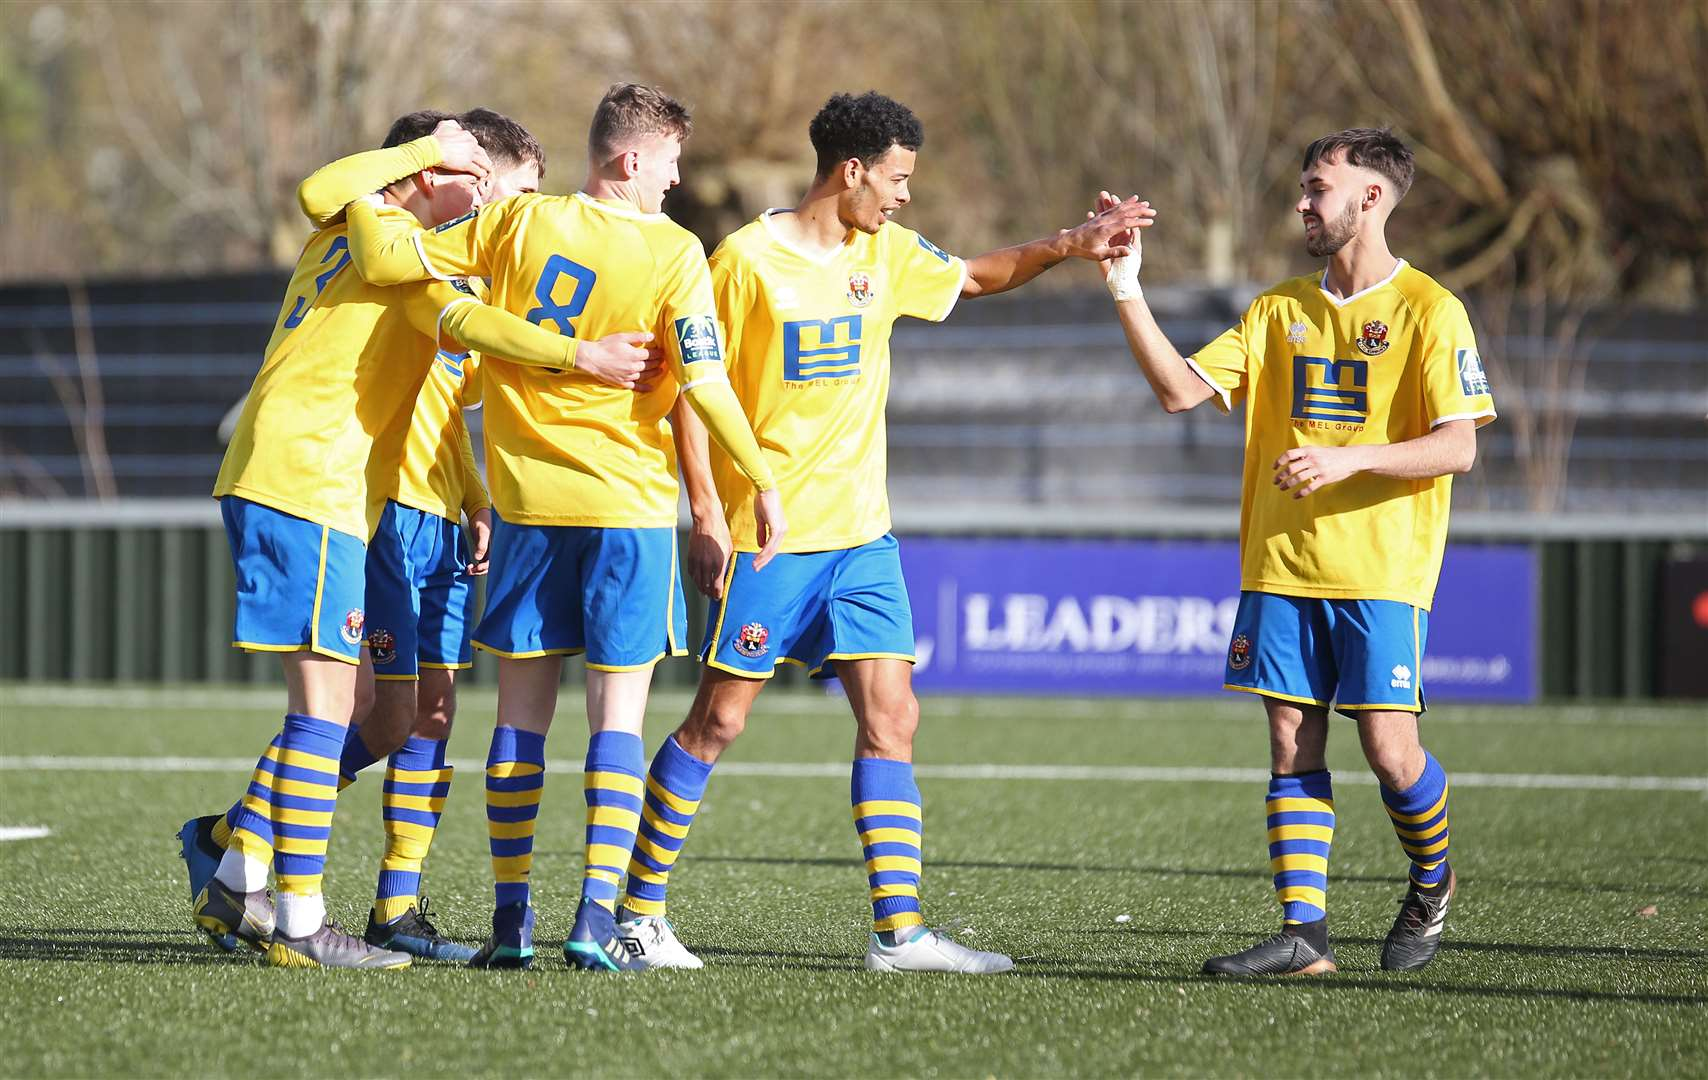 Reece Harris celebrates one of his two goals for AFC Sudbury at the weekend Picture: Richard Marsham